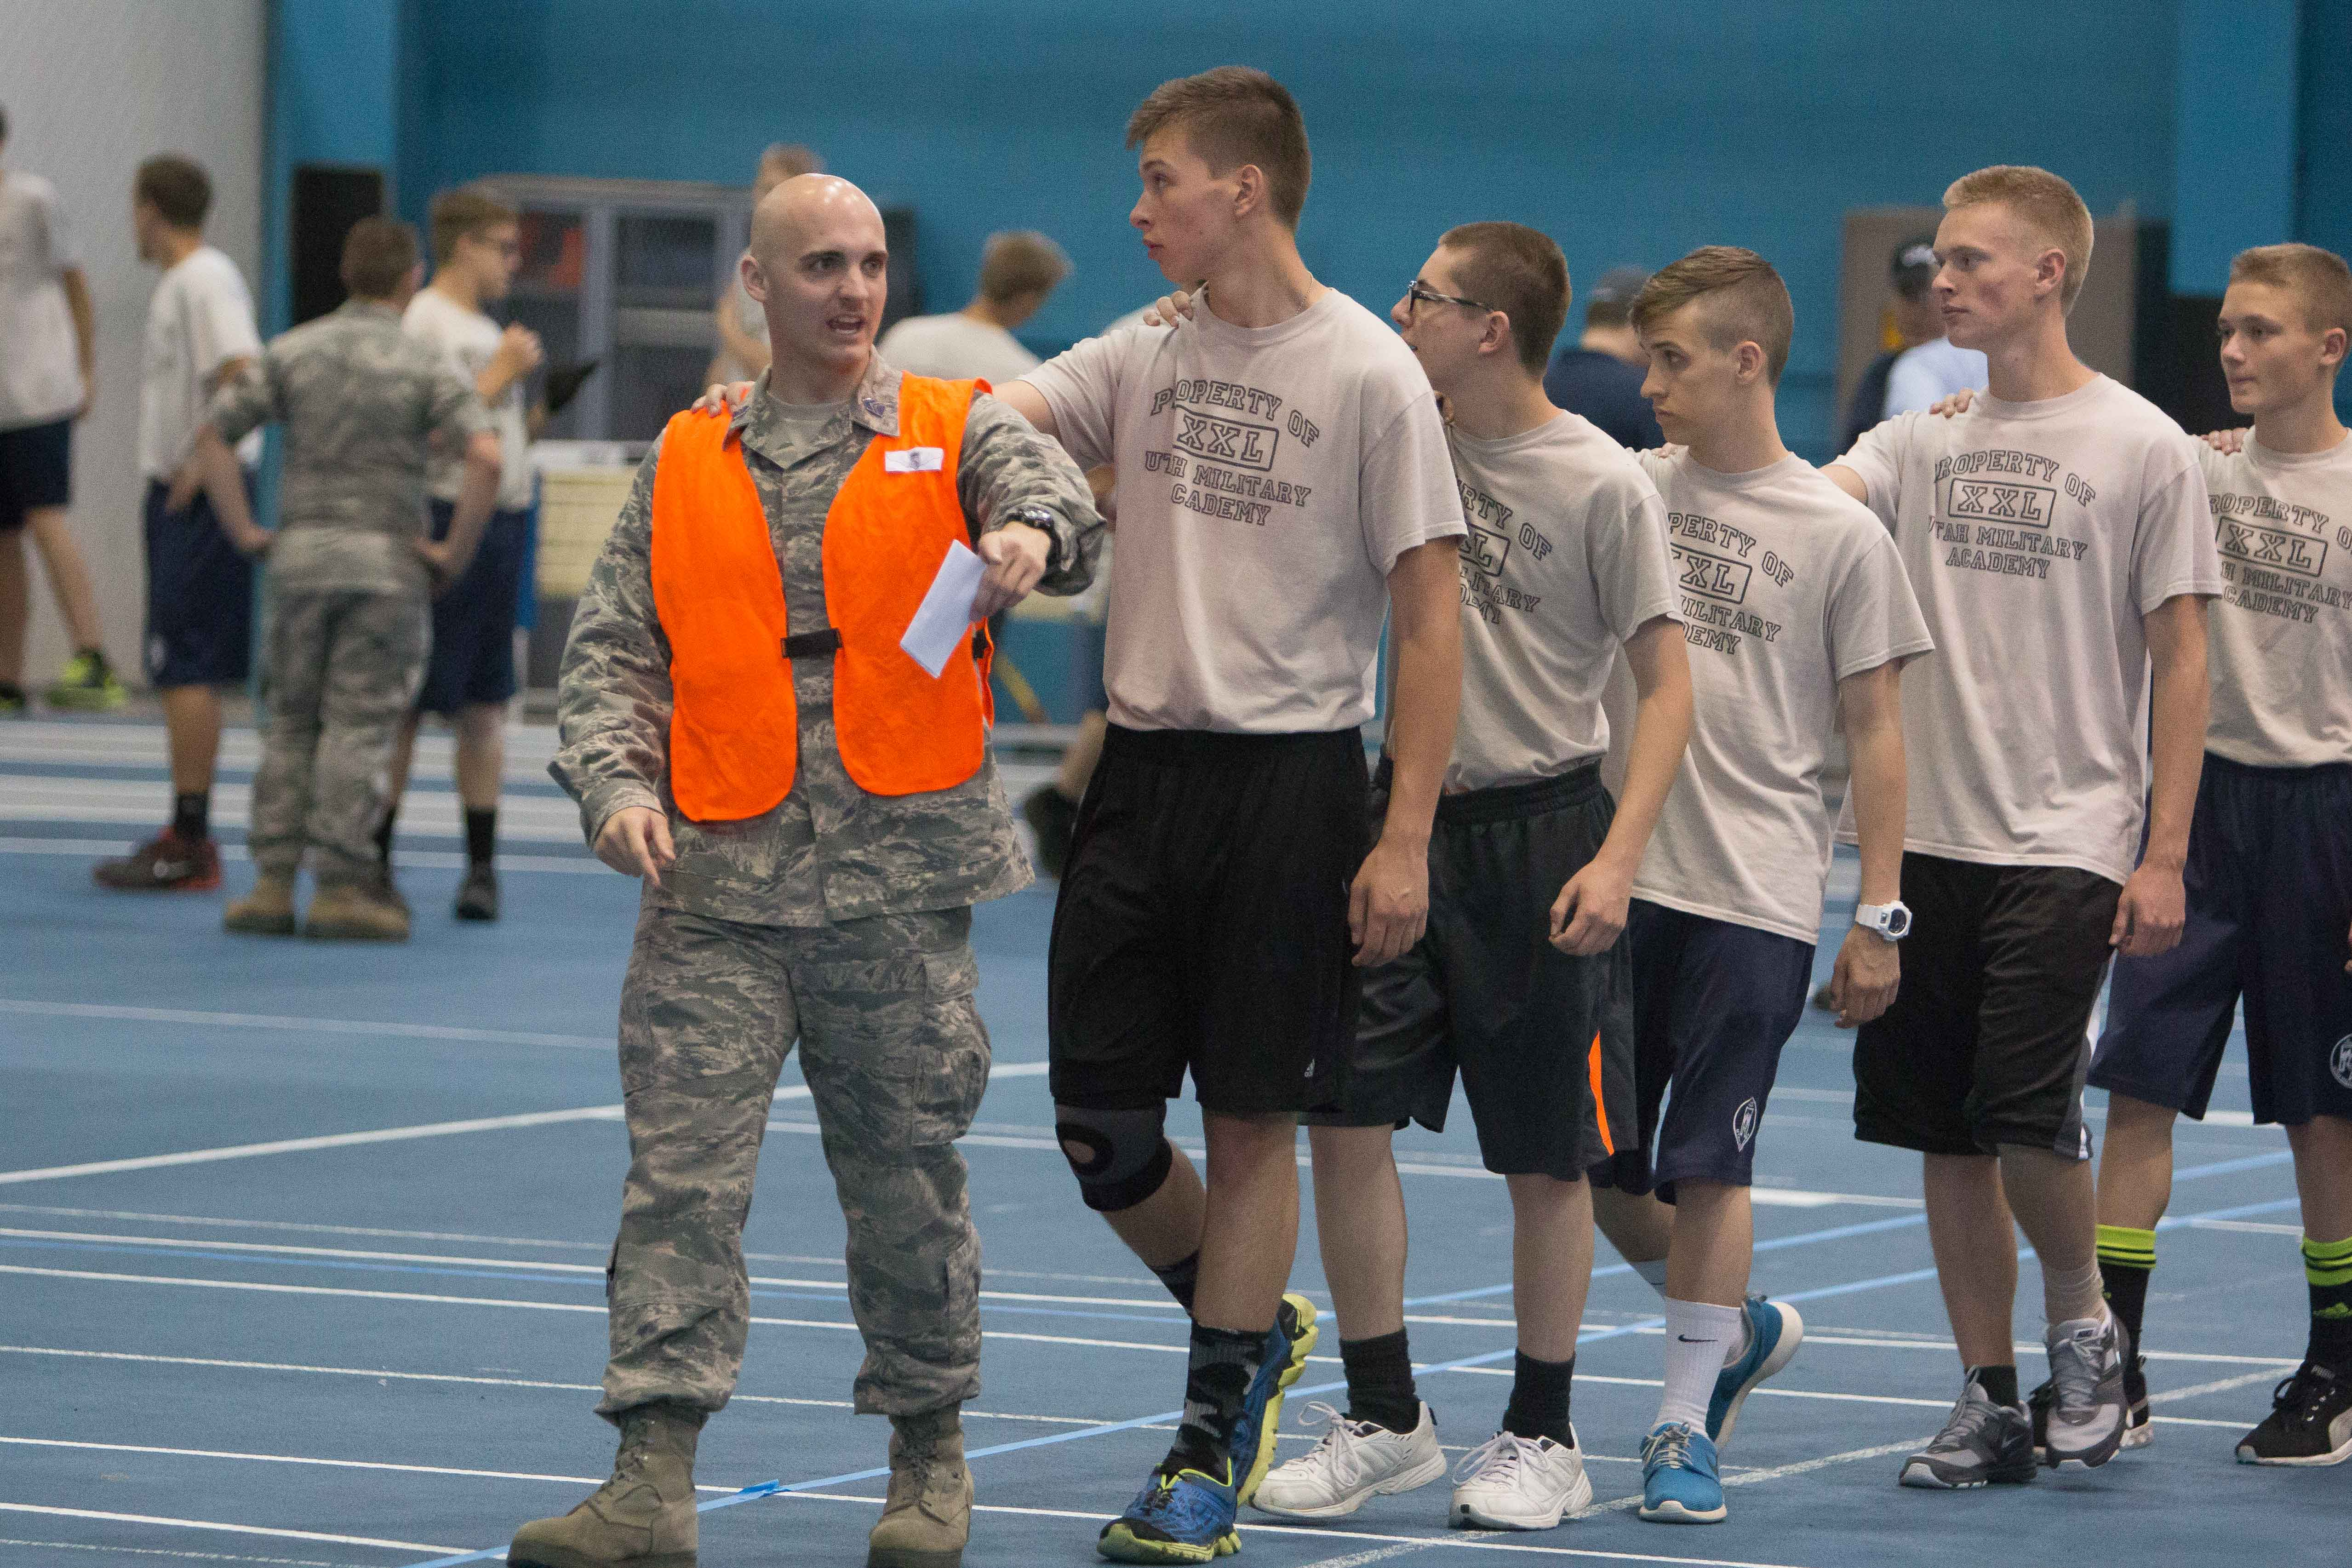 Wonderful BYU ROTC Students And High School Students From Around Utah Interact At  BYUu0027s ROTC Competition/event. (Maddi Dayton)